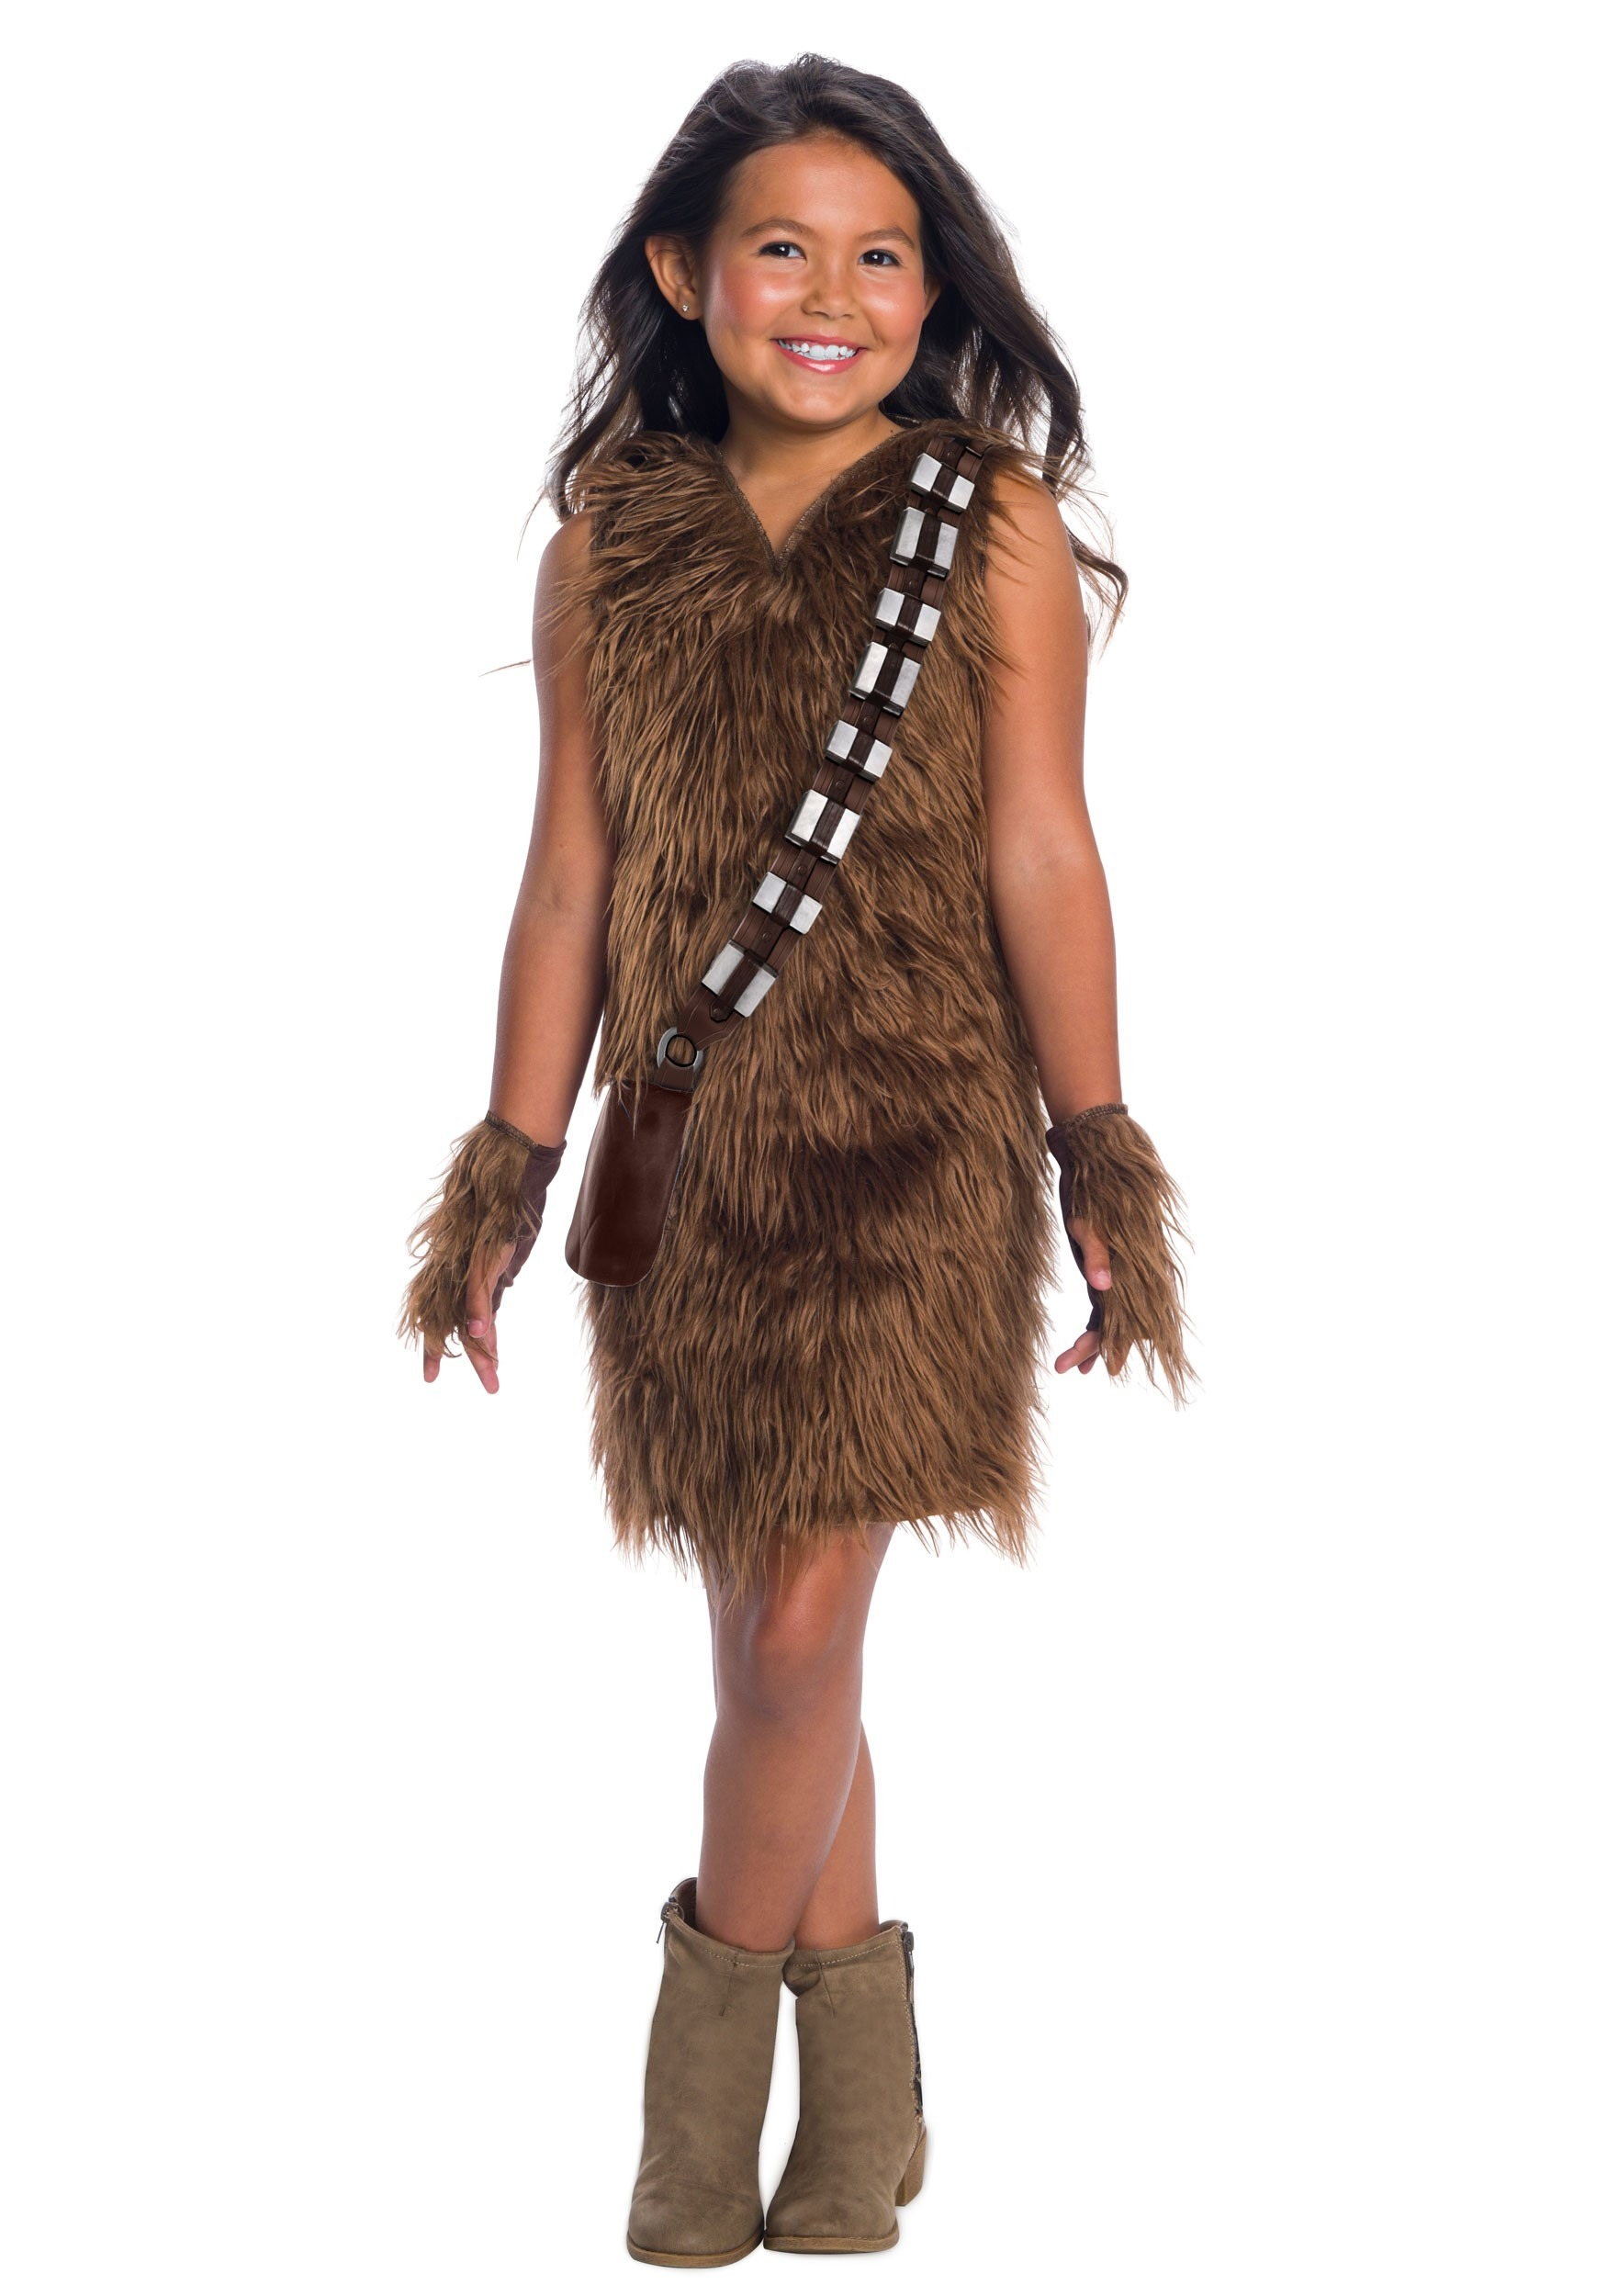 Star Wars Deluxe Chewbacca Dress for Girls